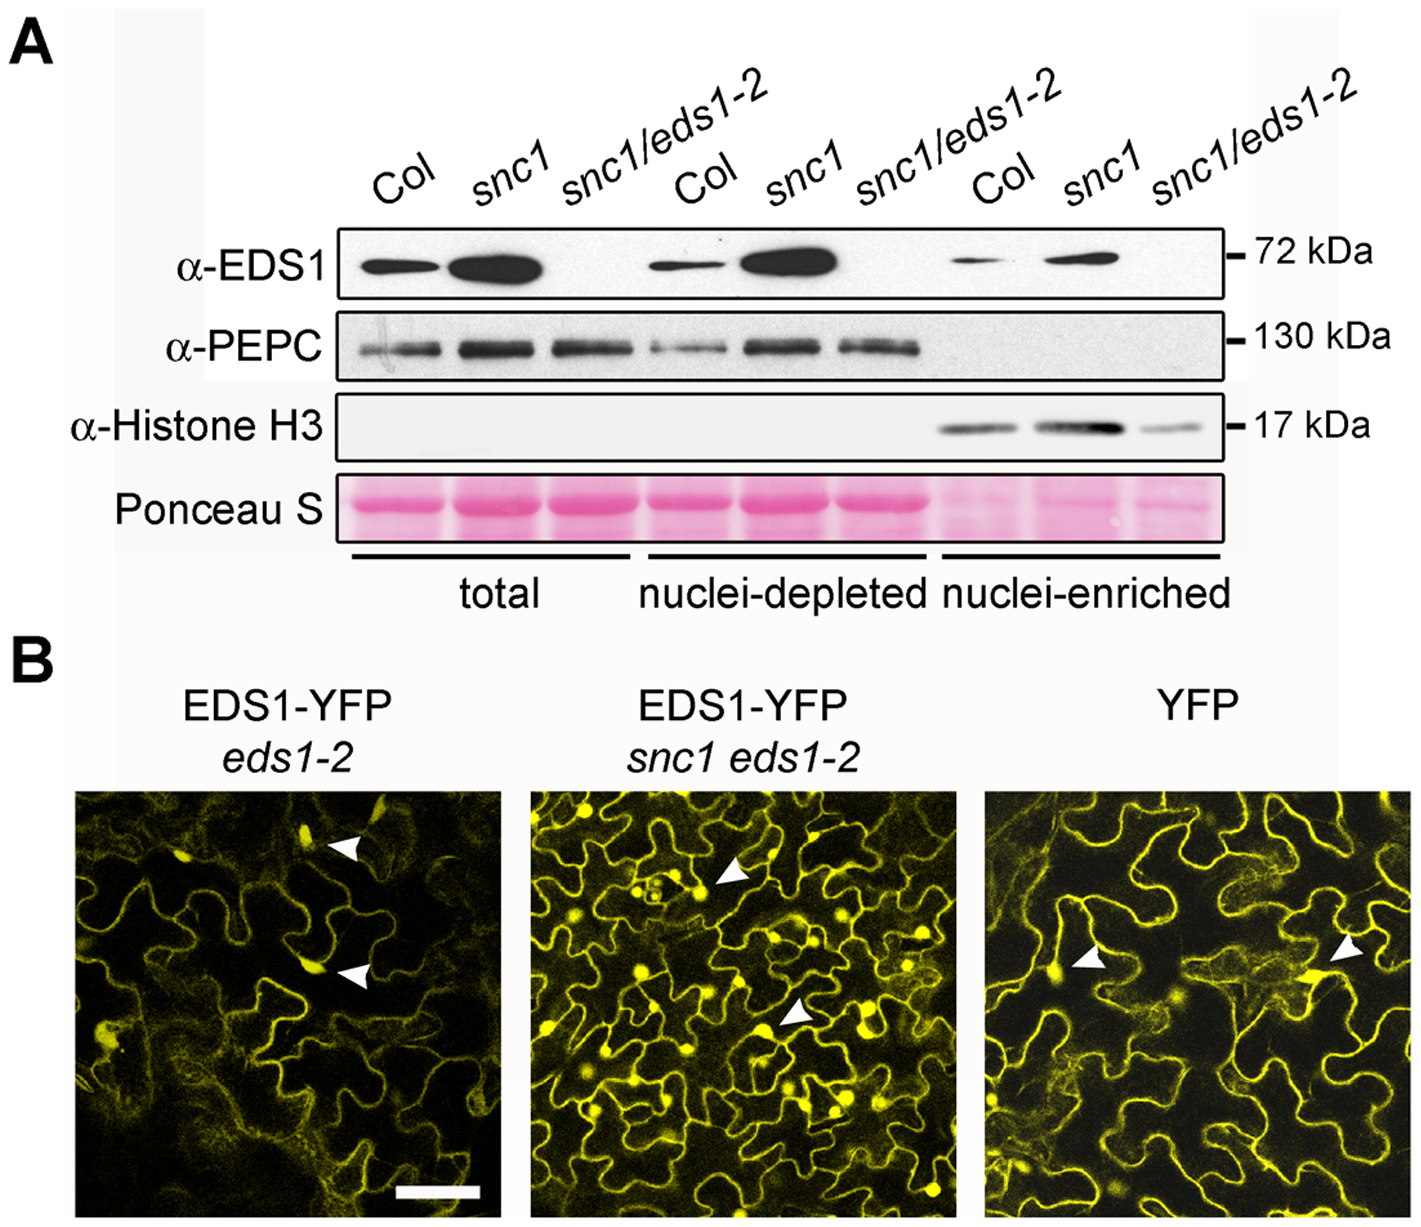 Deregulated resistance in <i>snc1</i> leads to increased accumulation of EDS1 in the nucleus and cytoplasm of <i>Arabidopsis</i> leaves.